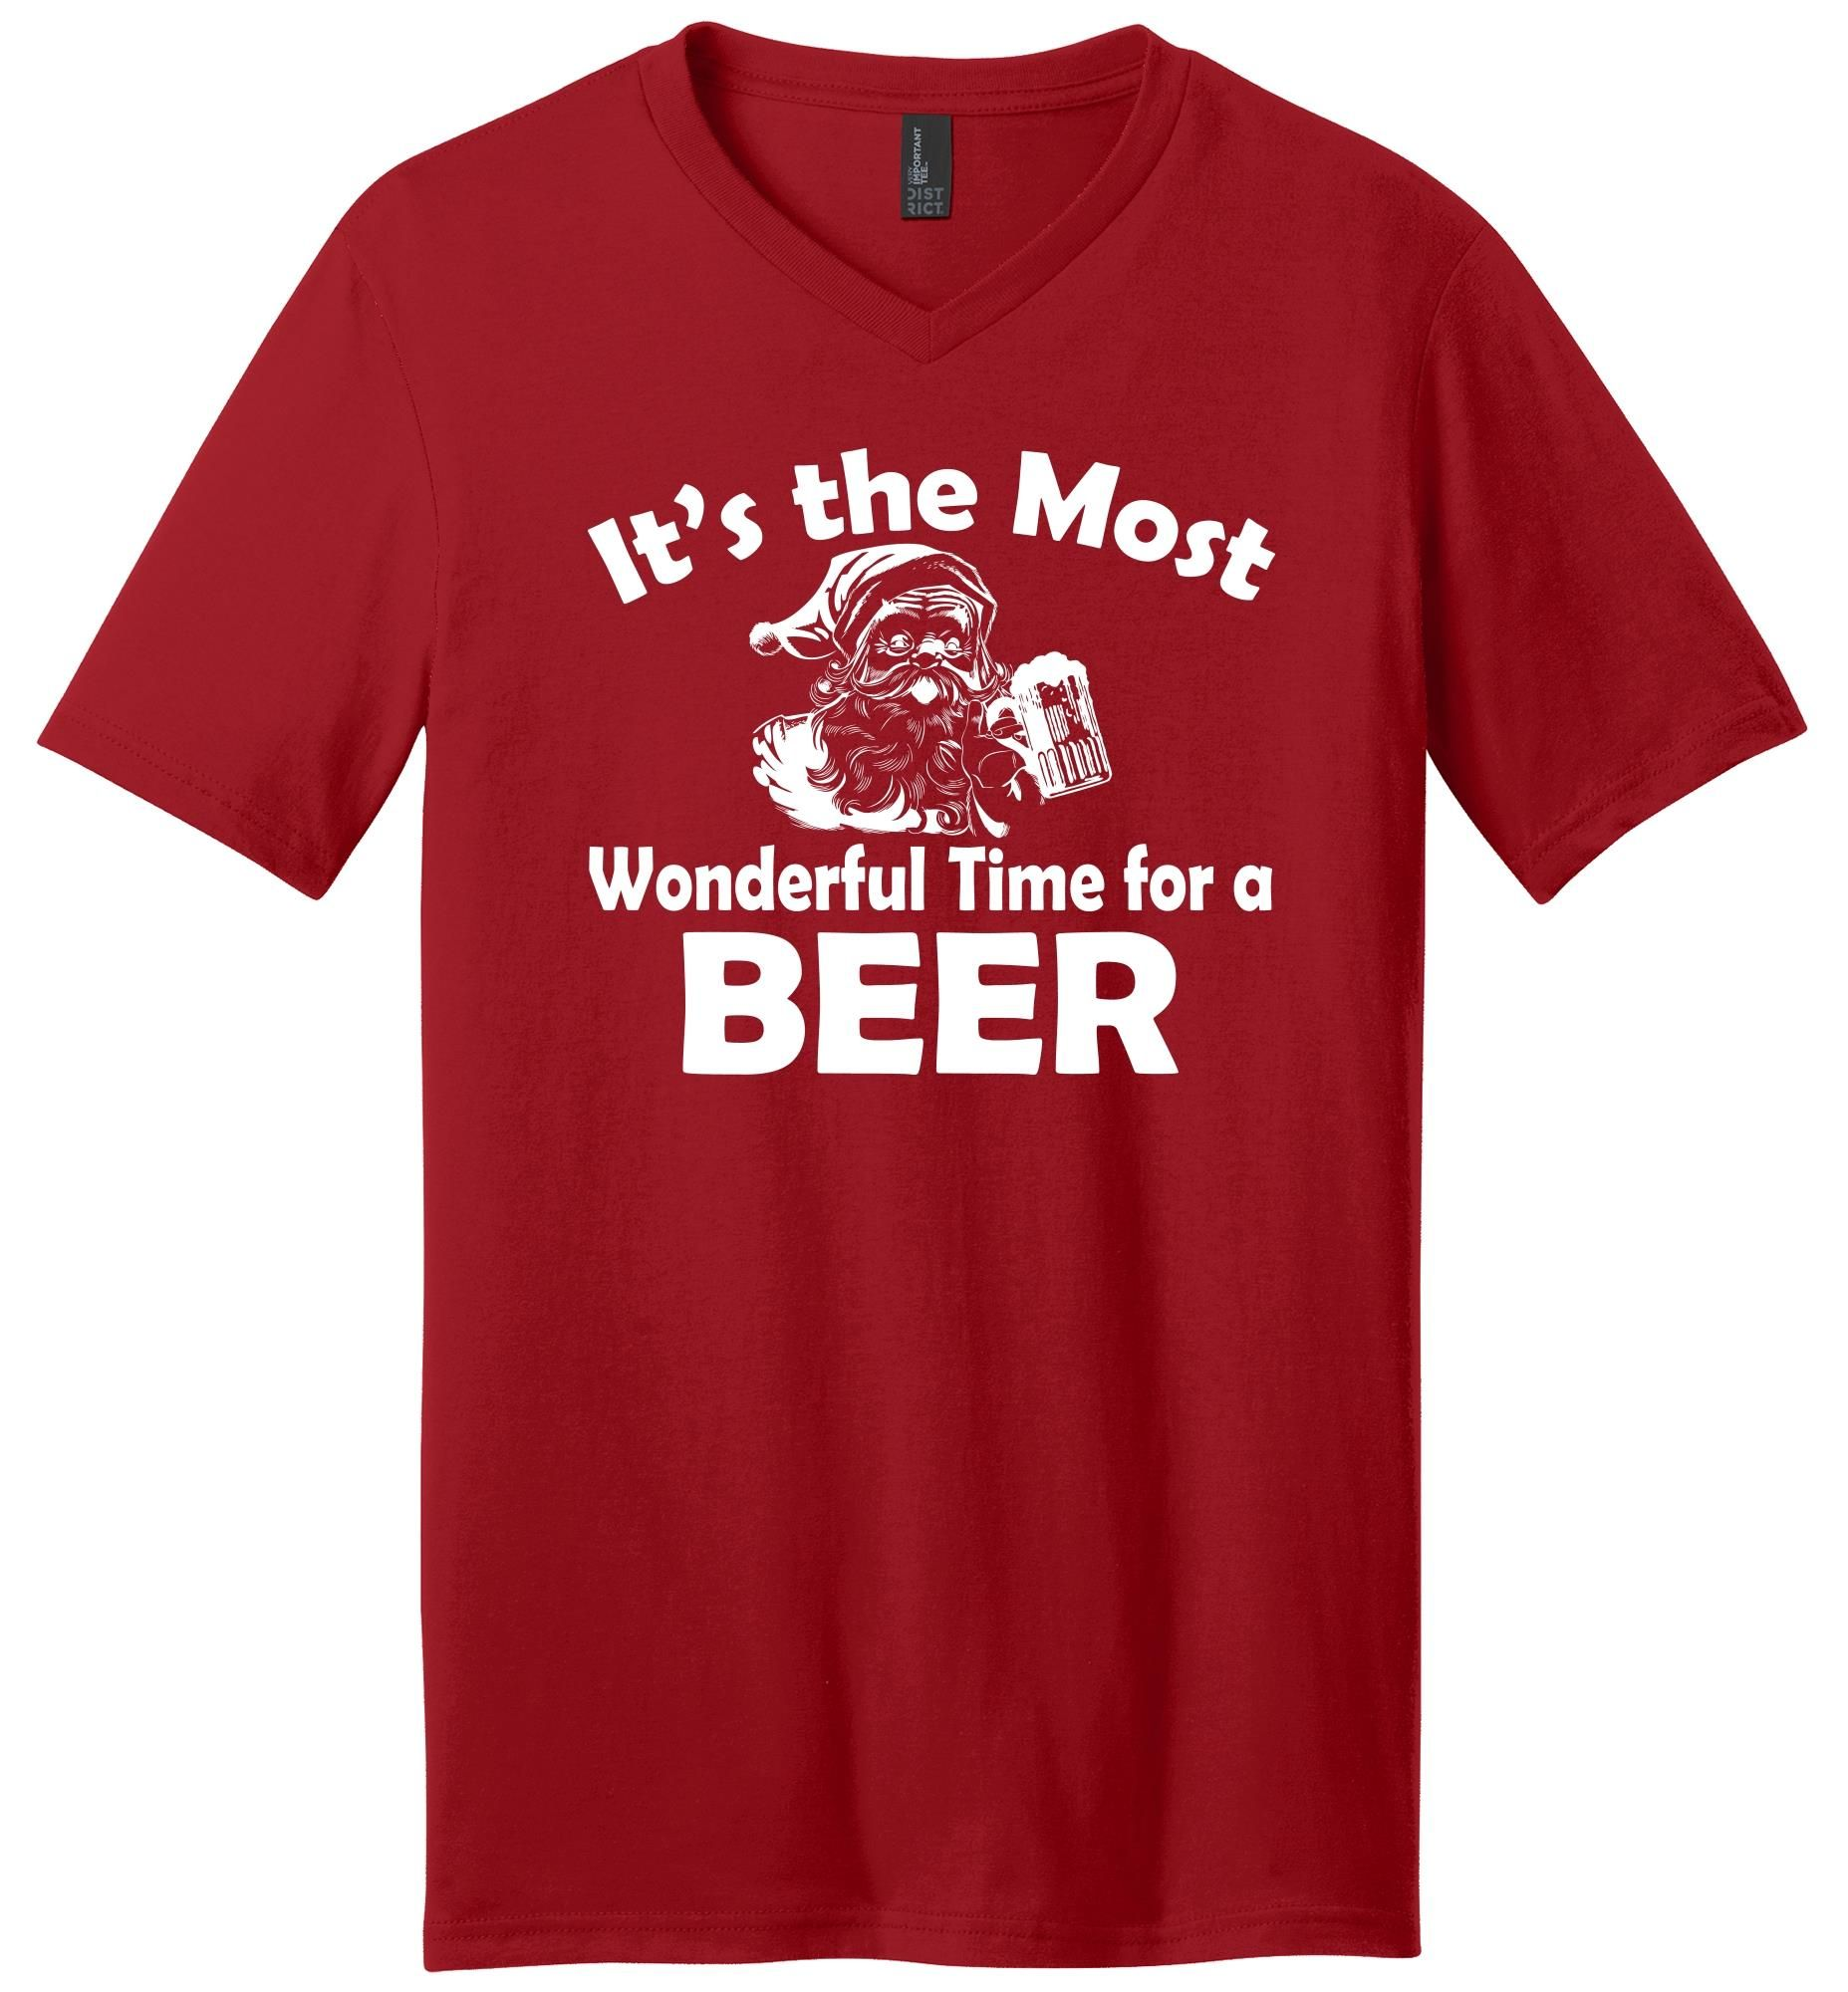 It's Most Wonderful Time For Beer      >>>> Available here  http://bit.ly/2g6eQ4q